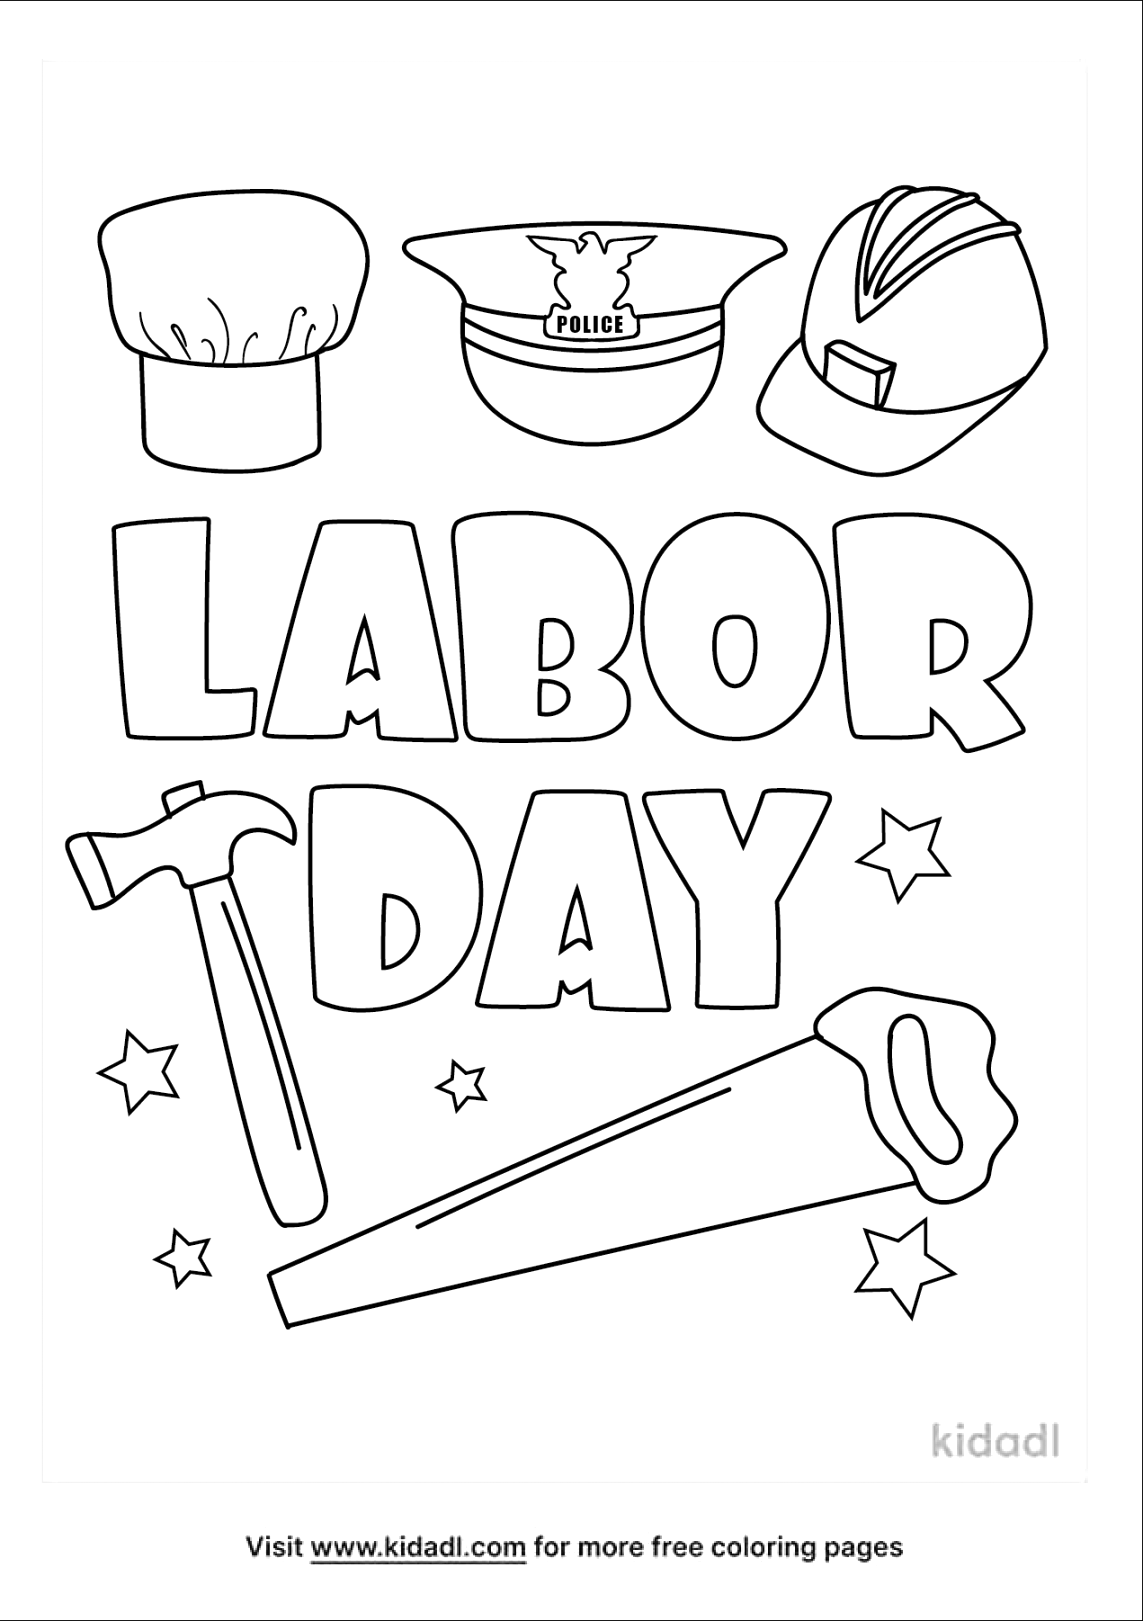 Simply download labor day coloring pages for children and adults